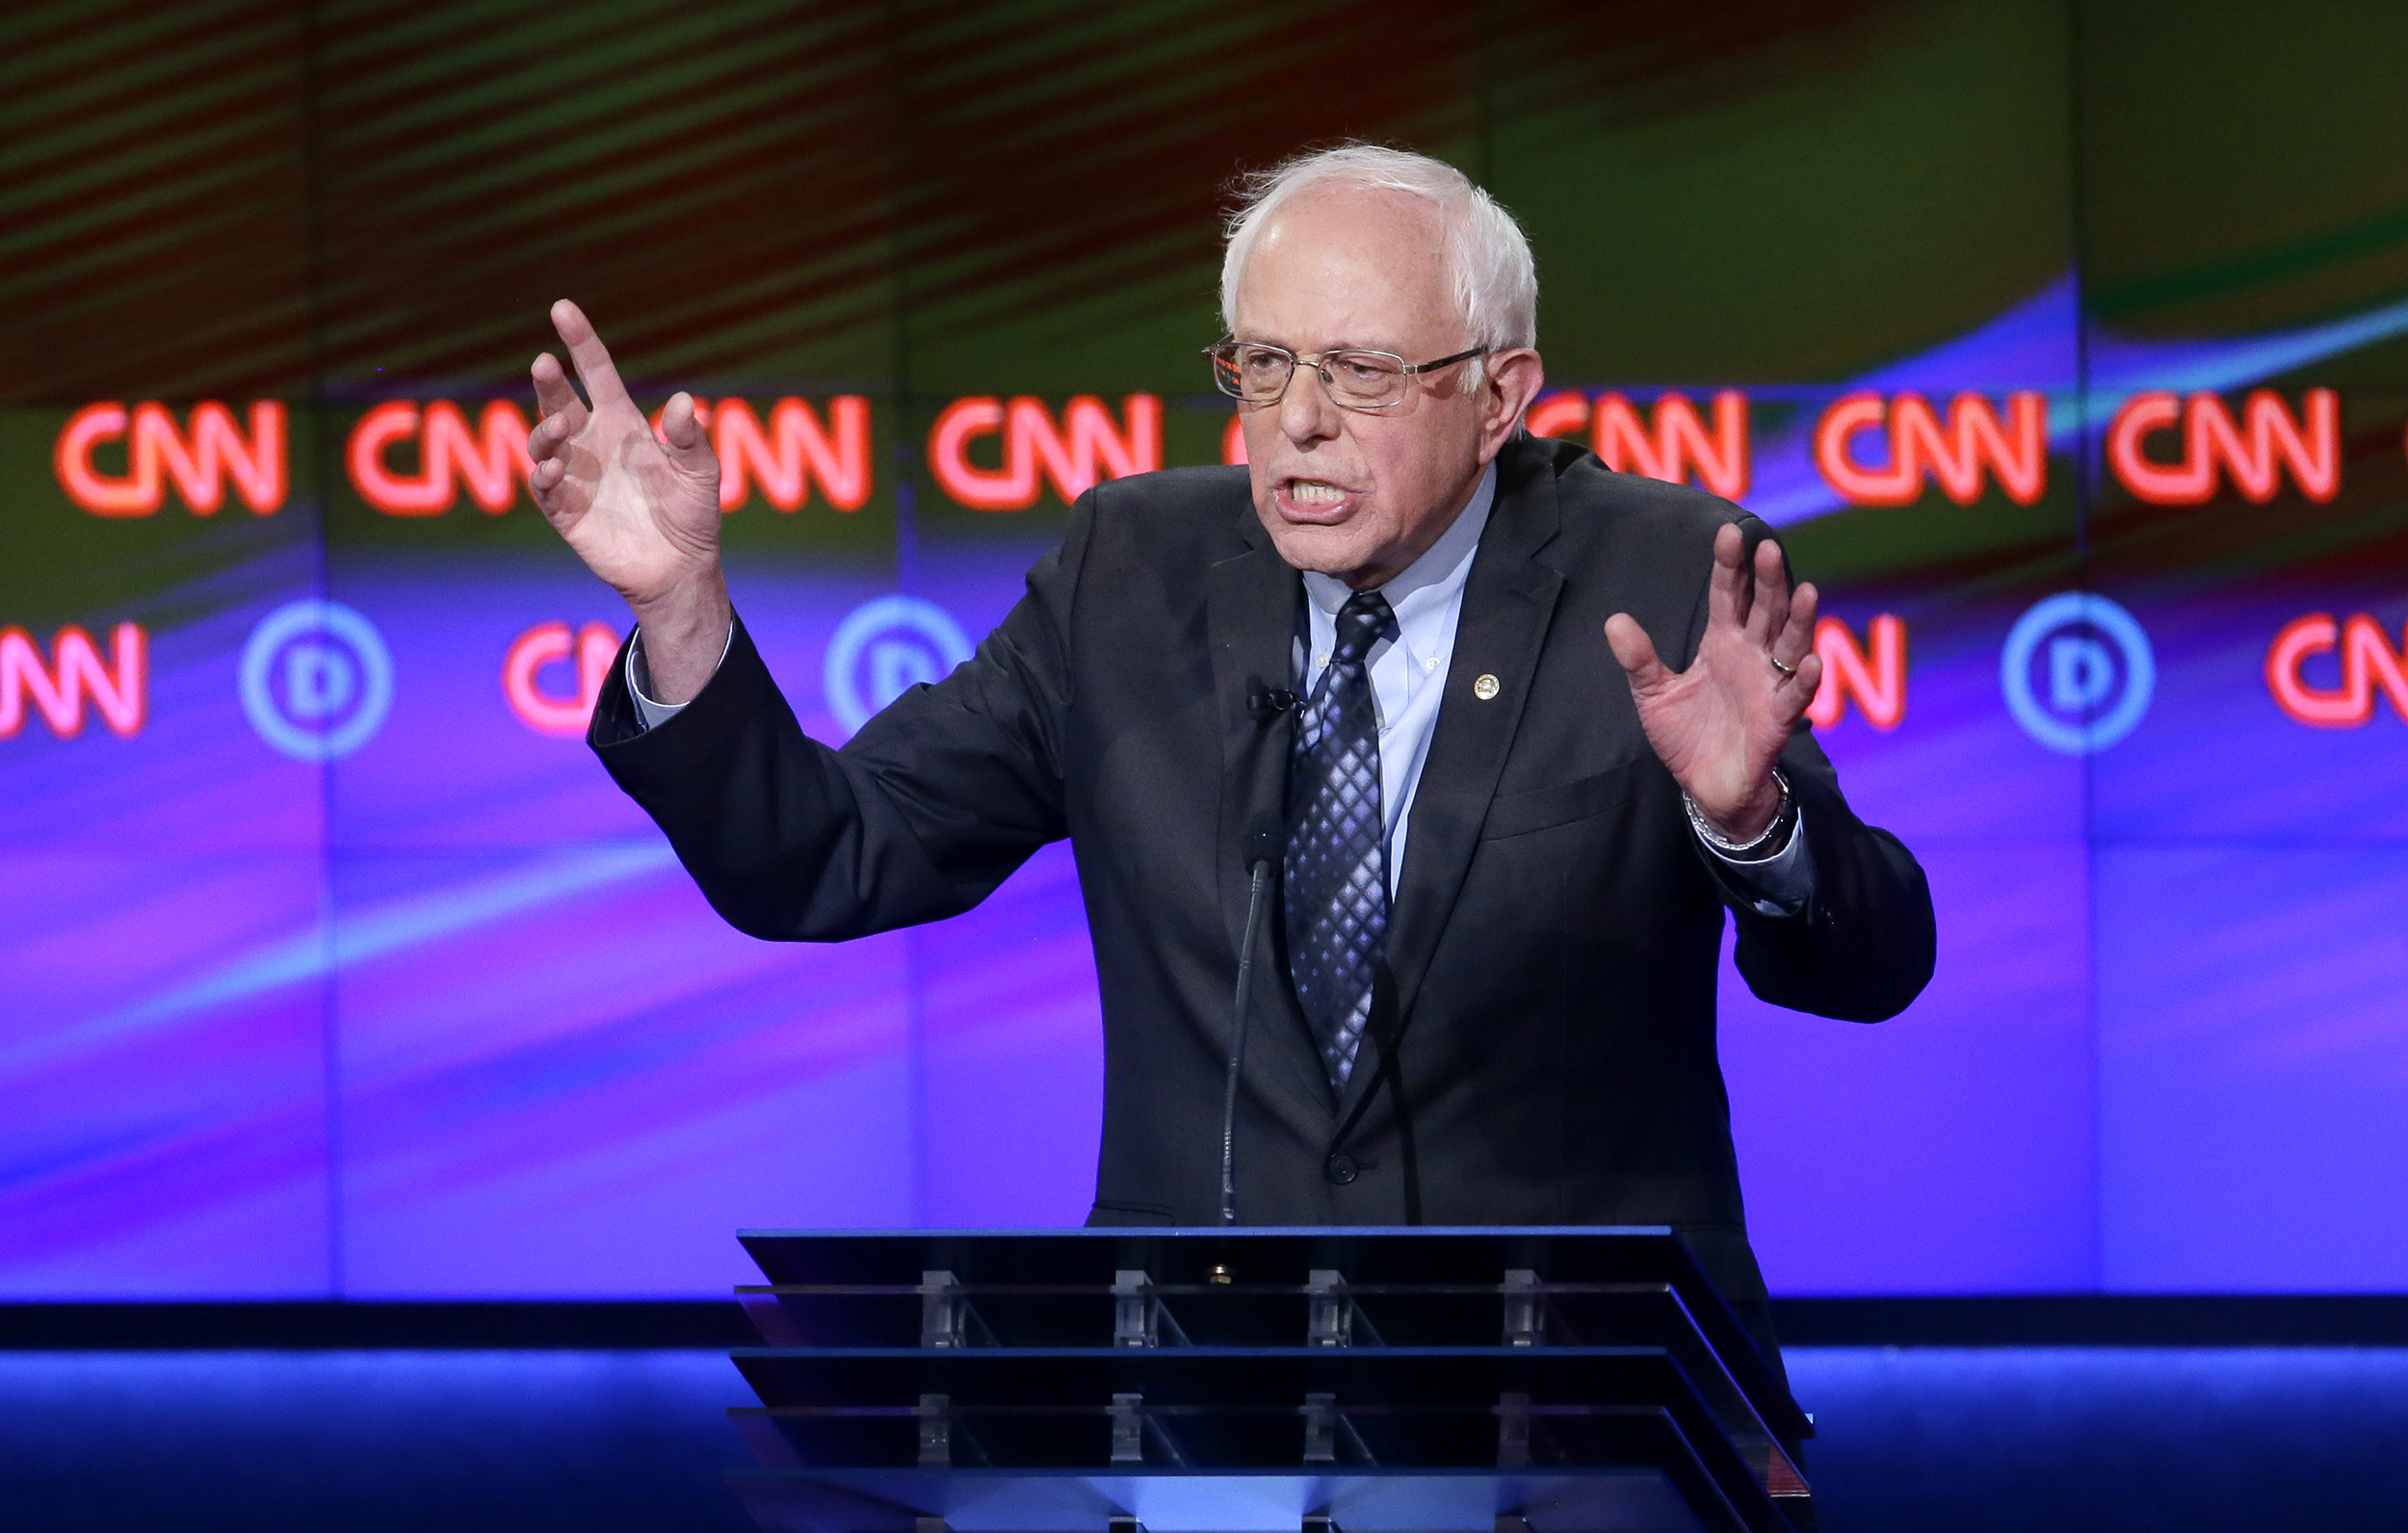 Sen. Bernie Sanders makes a point during a Democratic presidential primary debate at the University of Michigan-Flint in Flint, Mich. on March 6, 2016.